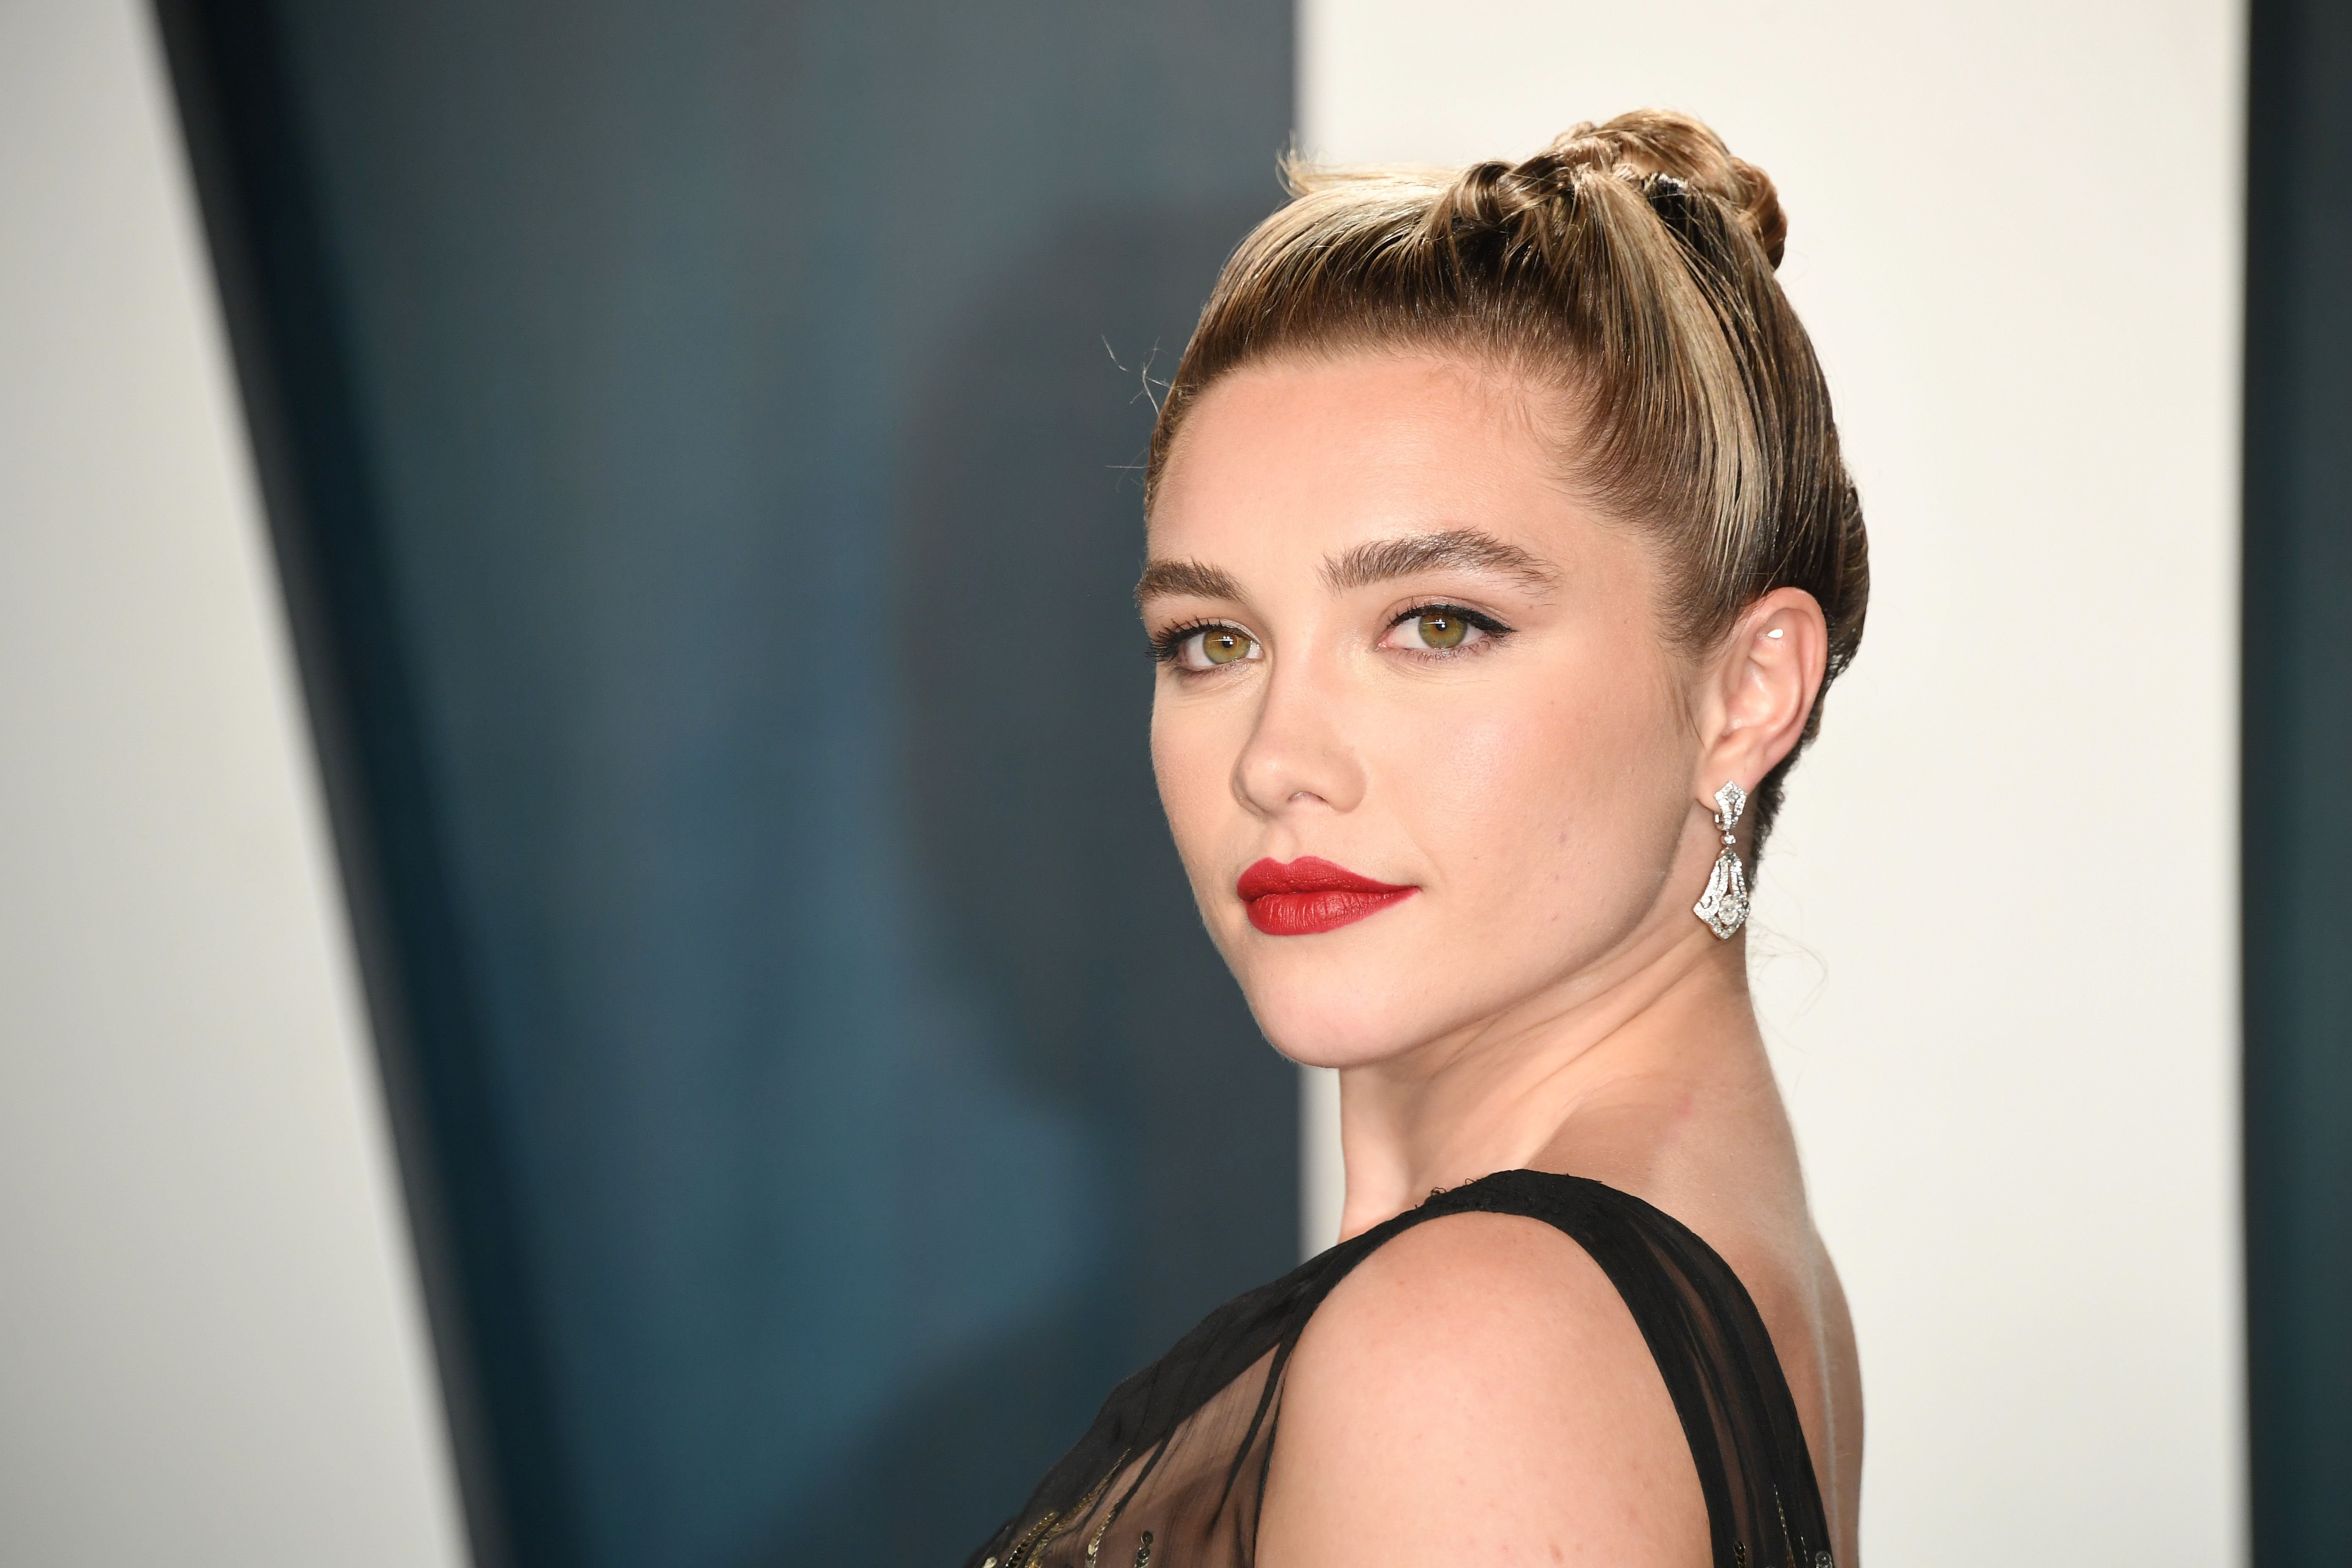 Florence Pugh at the 2020 Vanity Fair Oscar party on February 09, 2020 in Beverly Hills, California   Photo: Getty Images